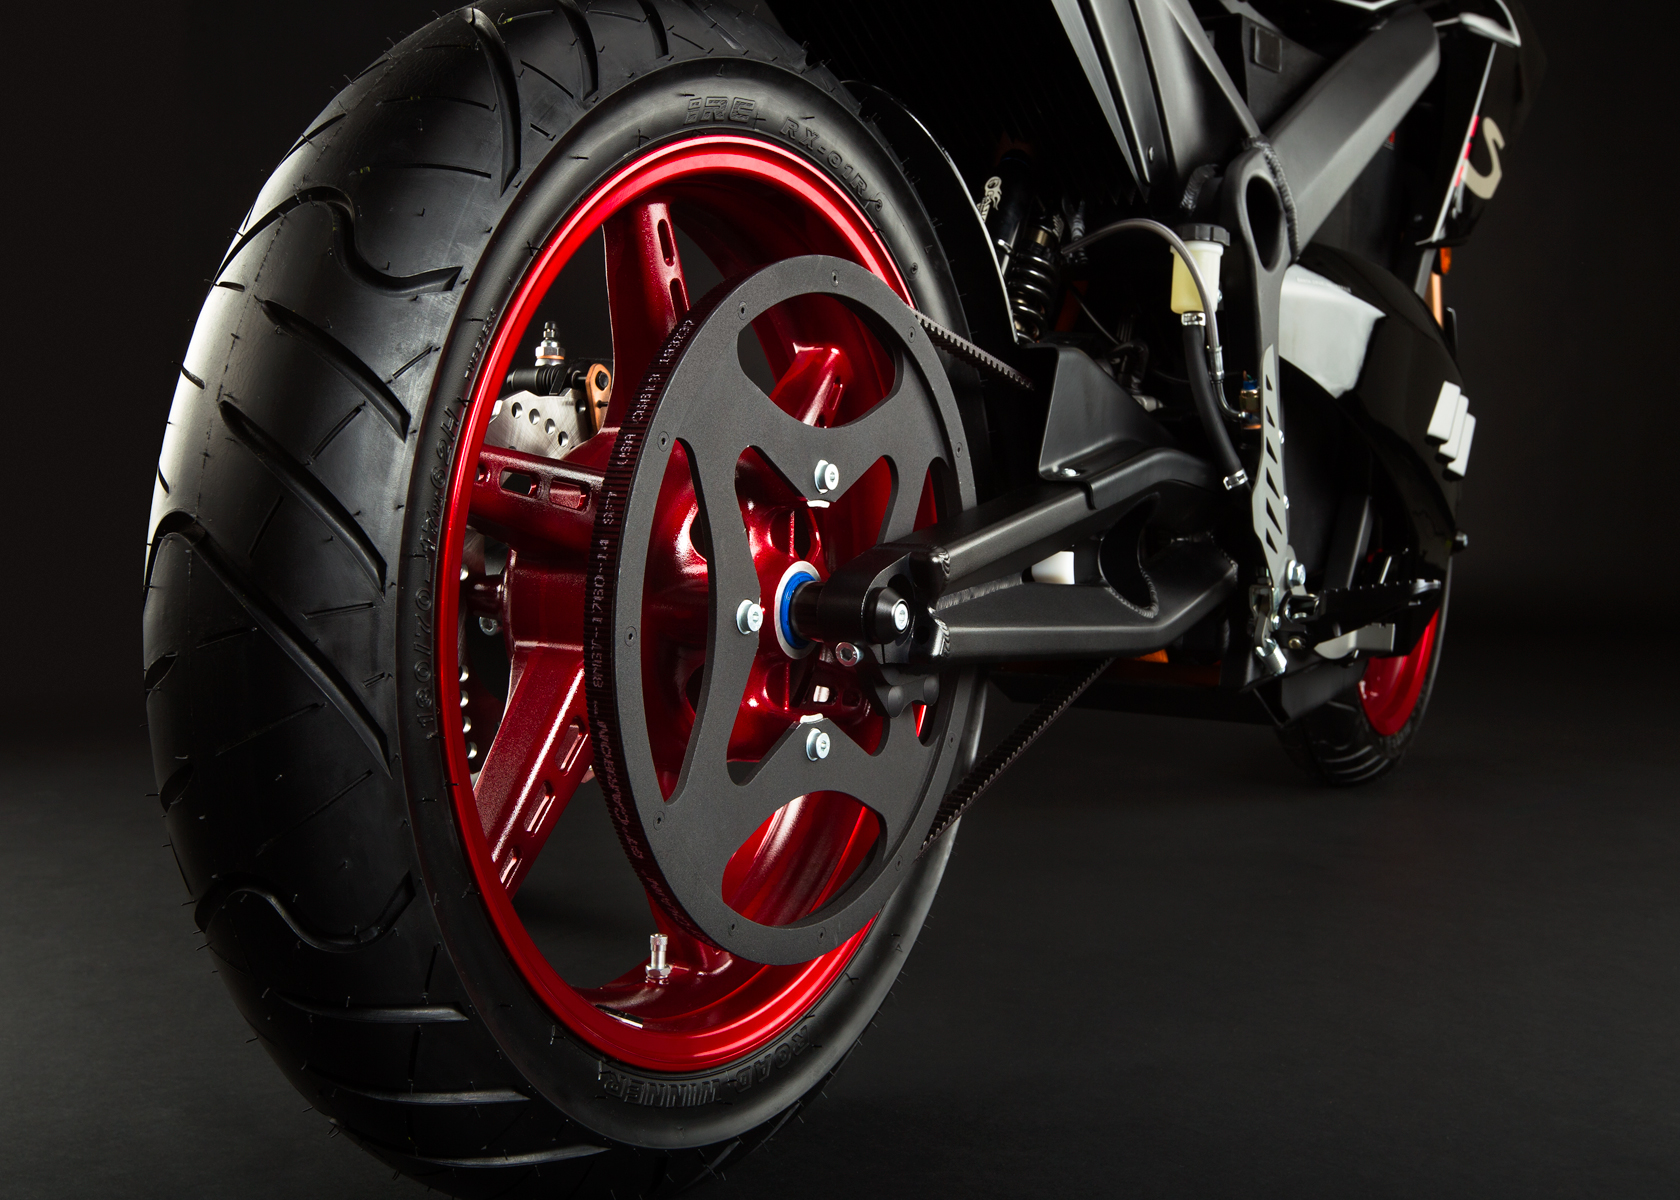 '.2012 Zero S Electric Motorcycle: Drivetrain / Chain / Sprocket.'